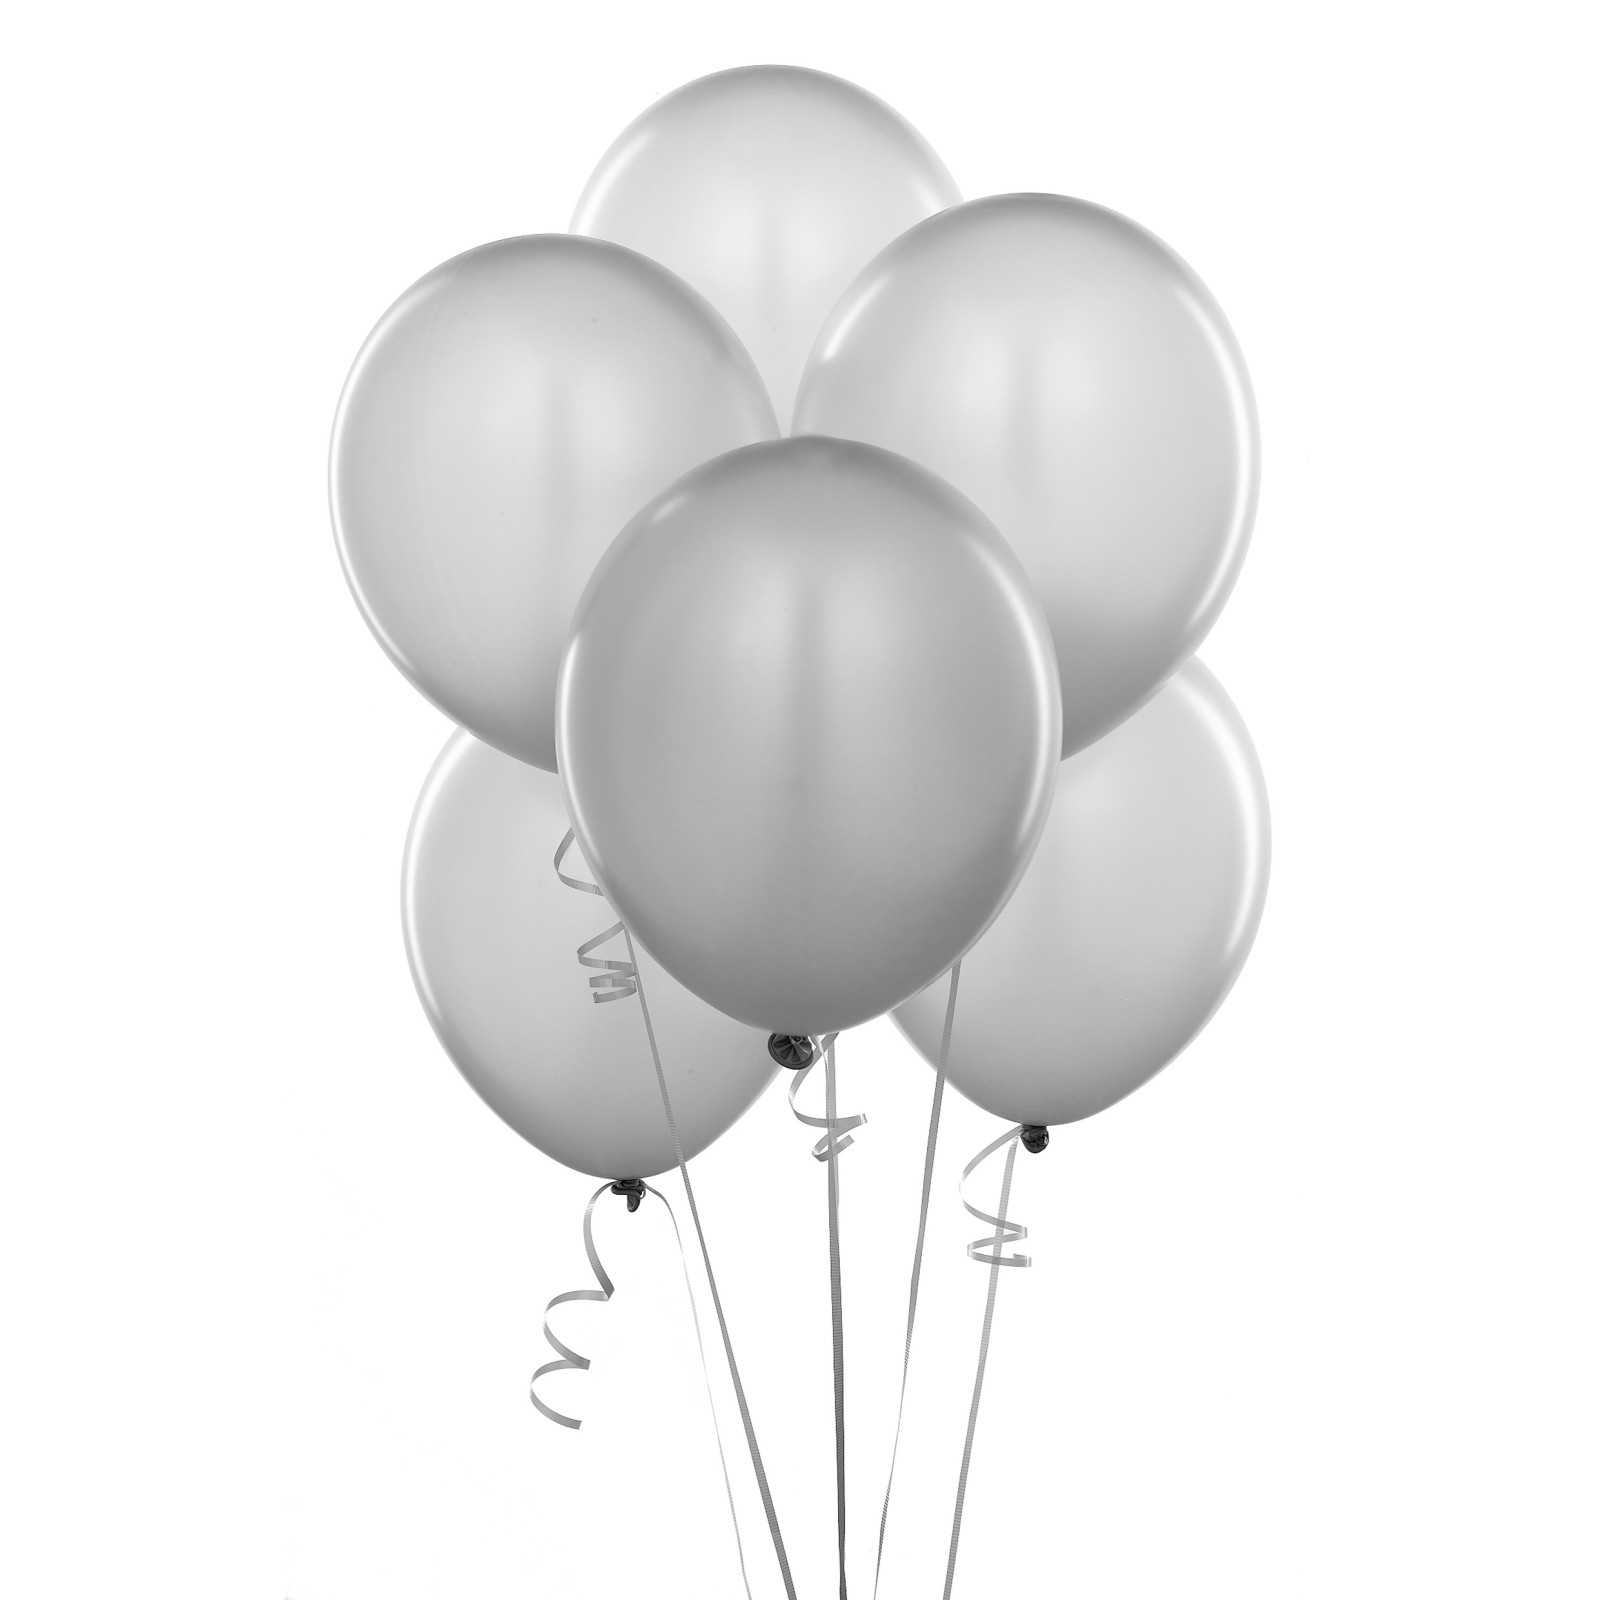 Explore White Balloons, Latex Balloons, and more! - Balloons Bunch PNG Black And White